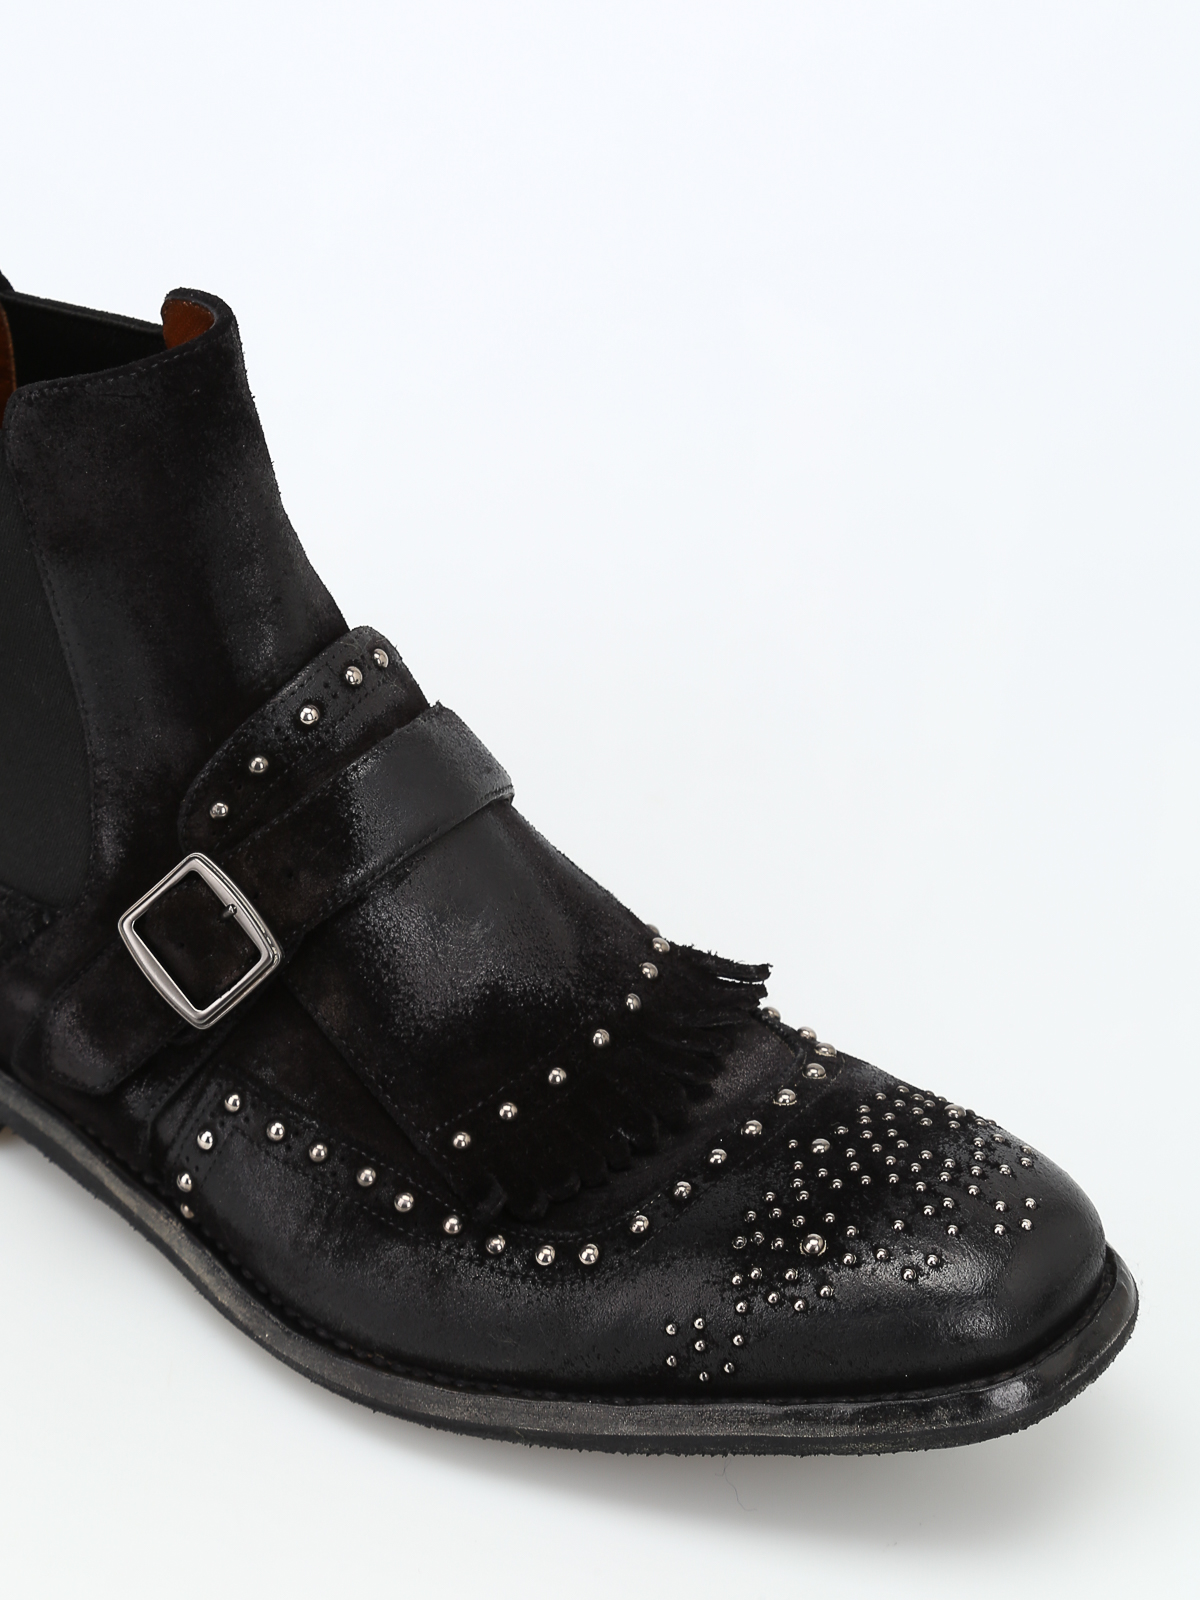 Shanghai 6 studded suede booties